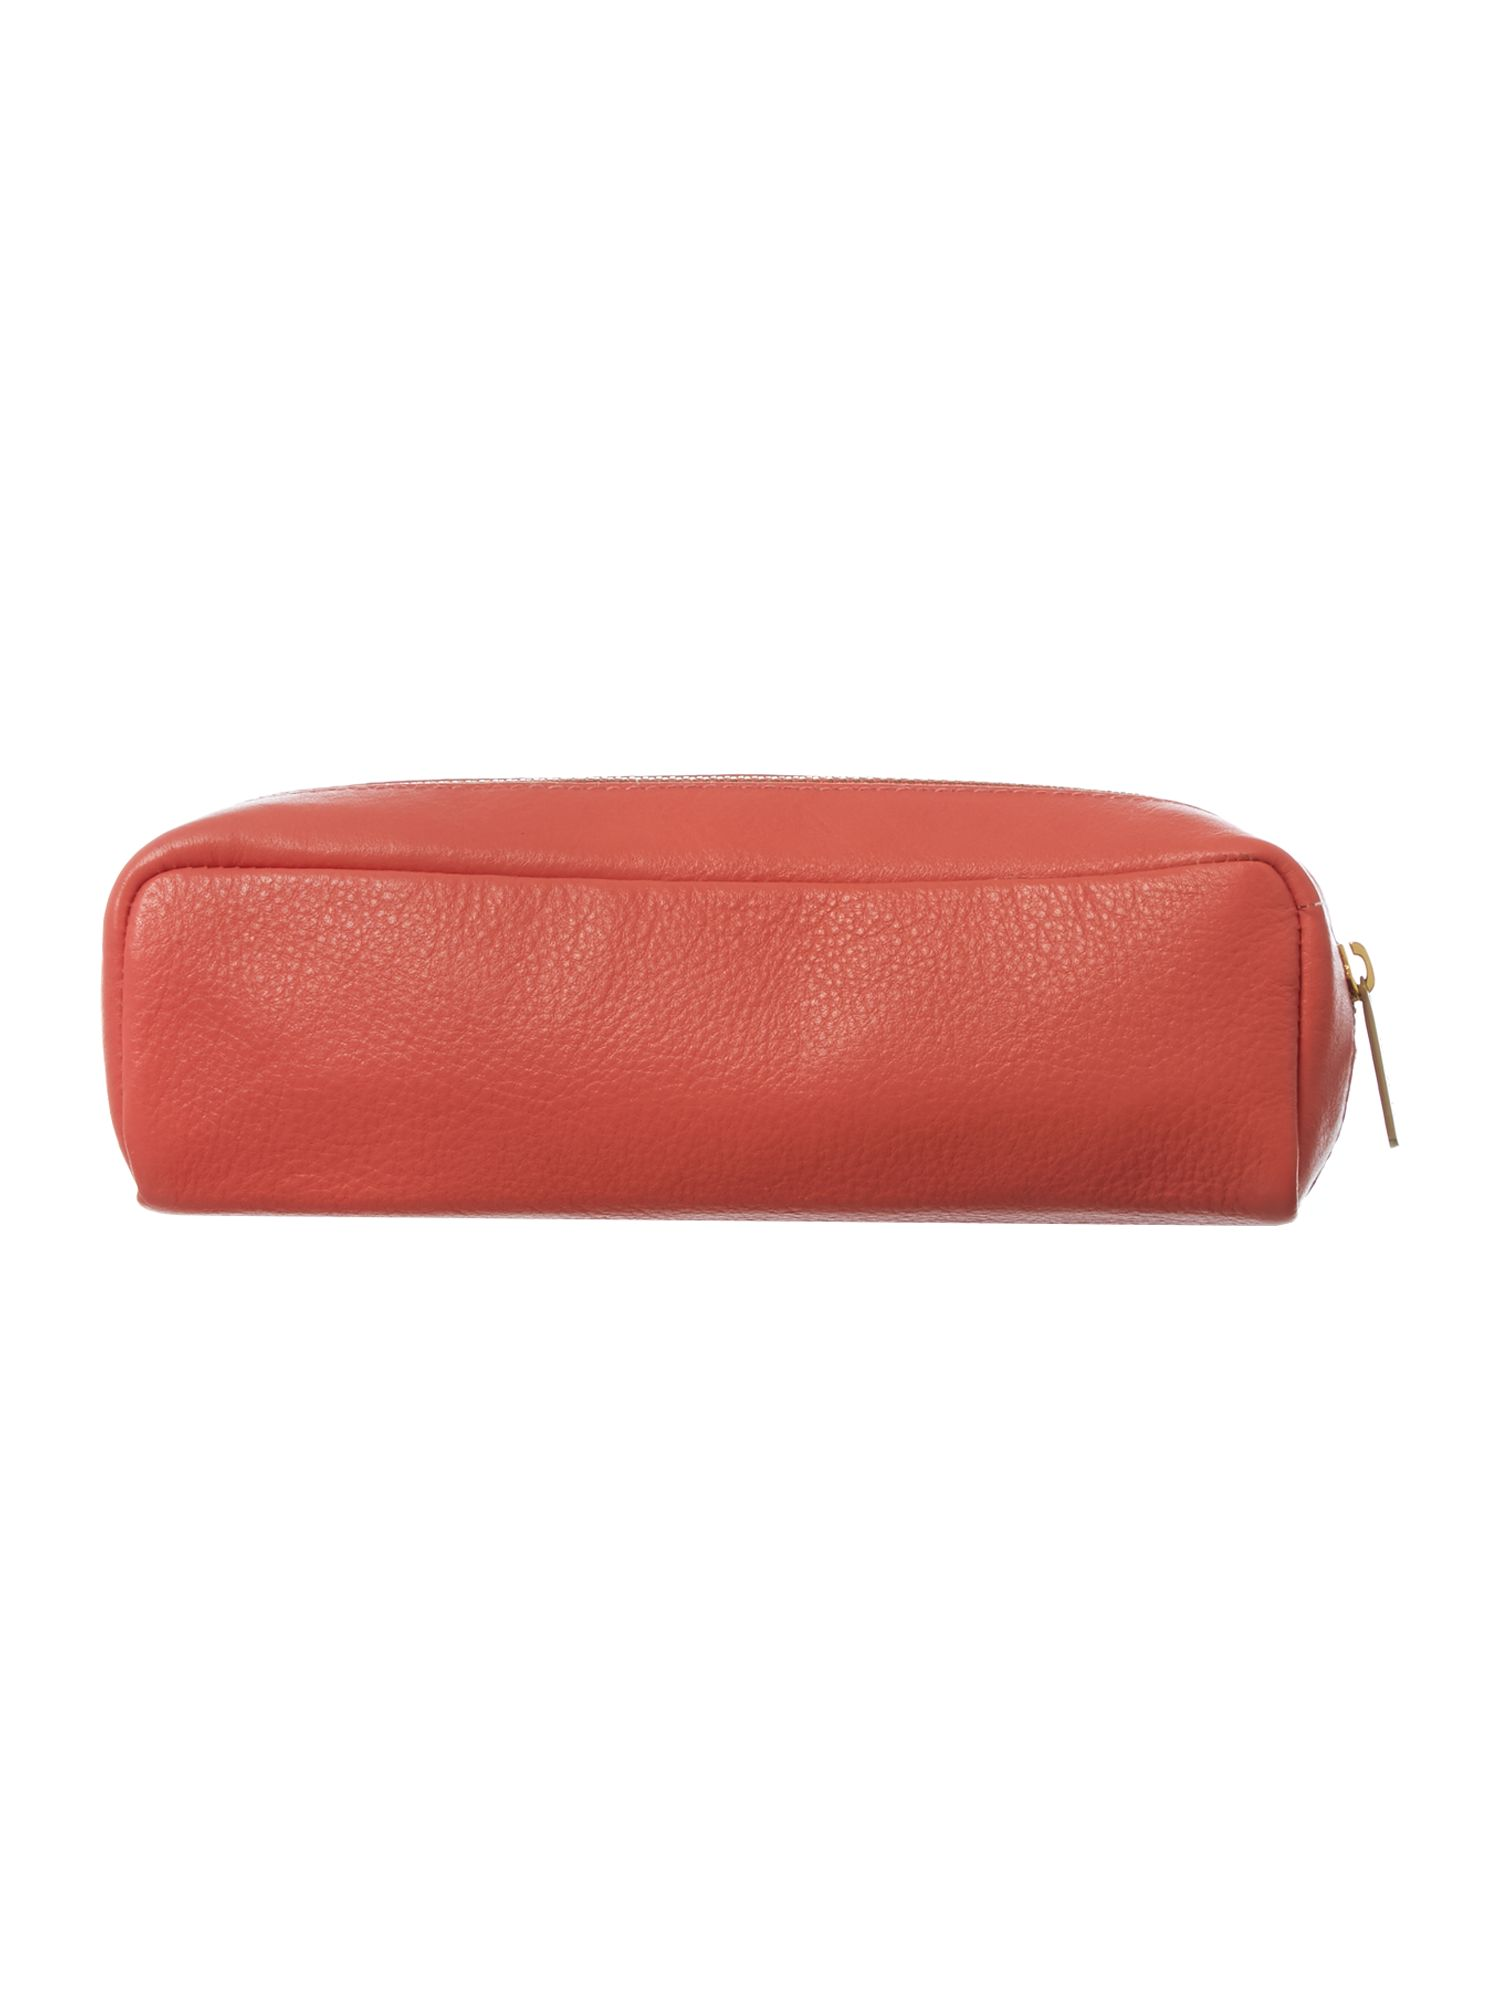 Kelly coral pencil case